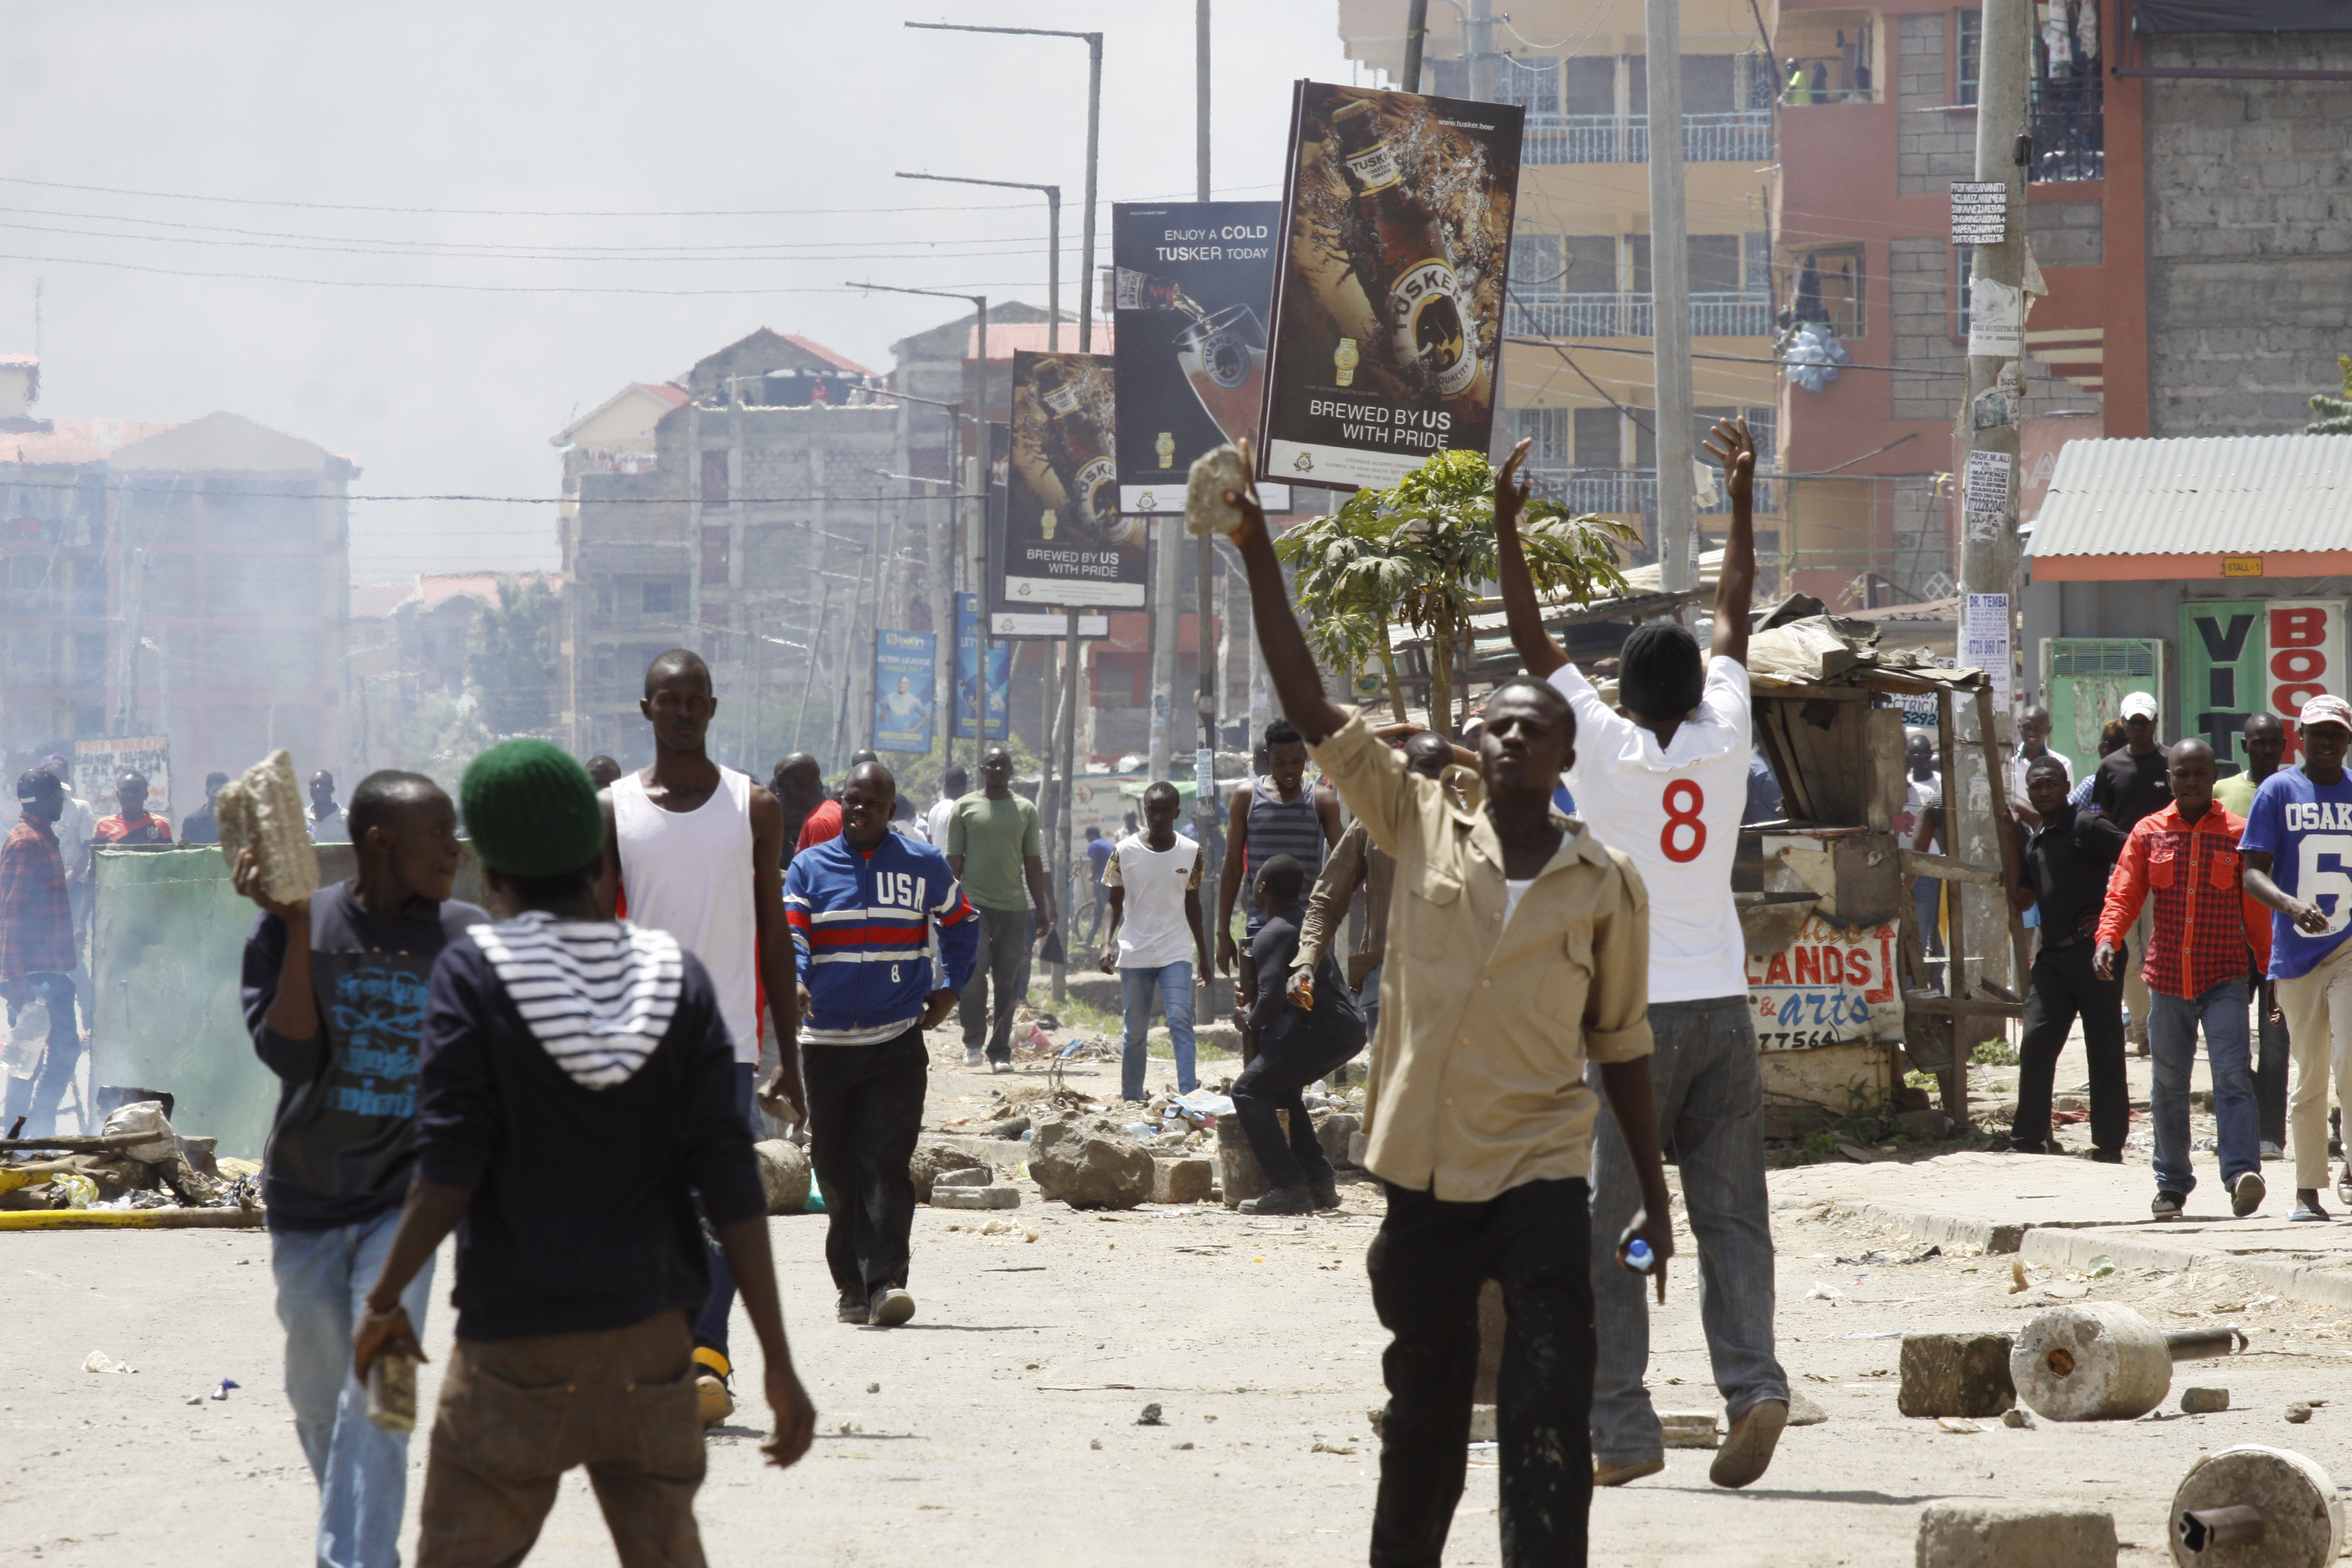 Opposition supporters clash with police in the Jacaranda grounds quarter in Nairobi, Kenya, Nov. 28, 2017.